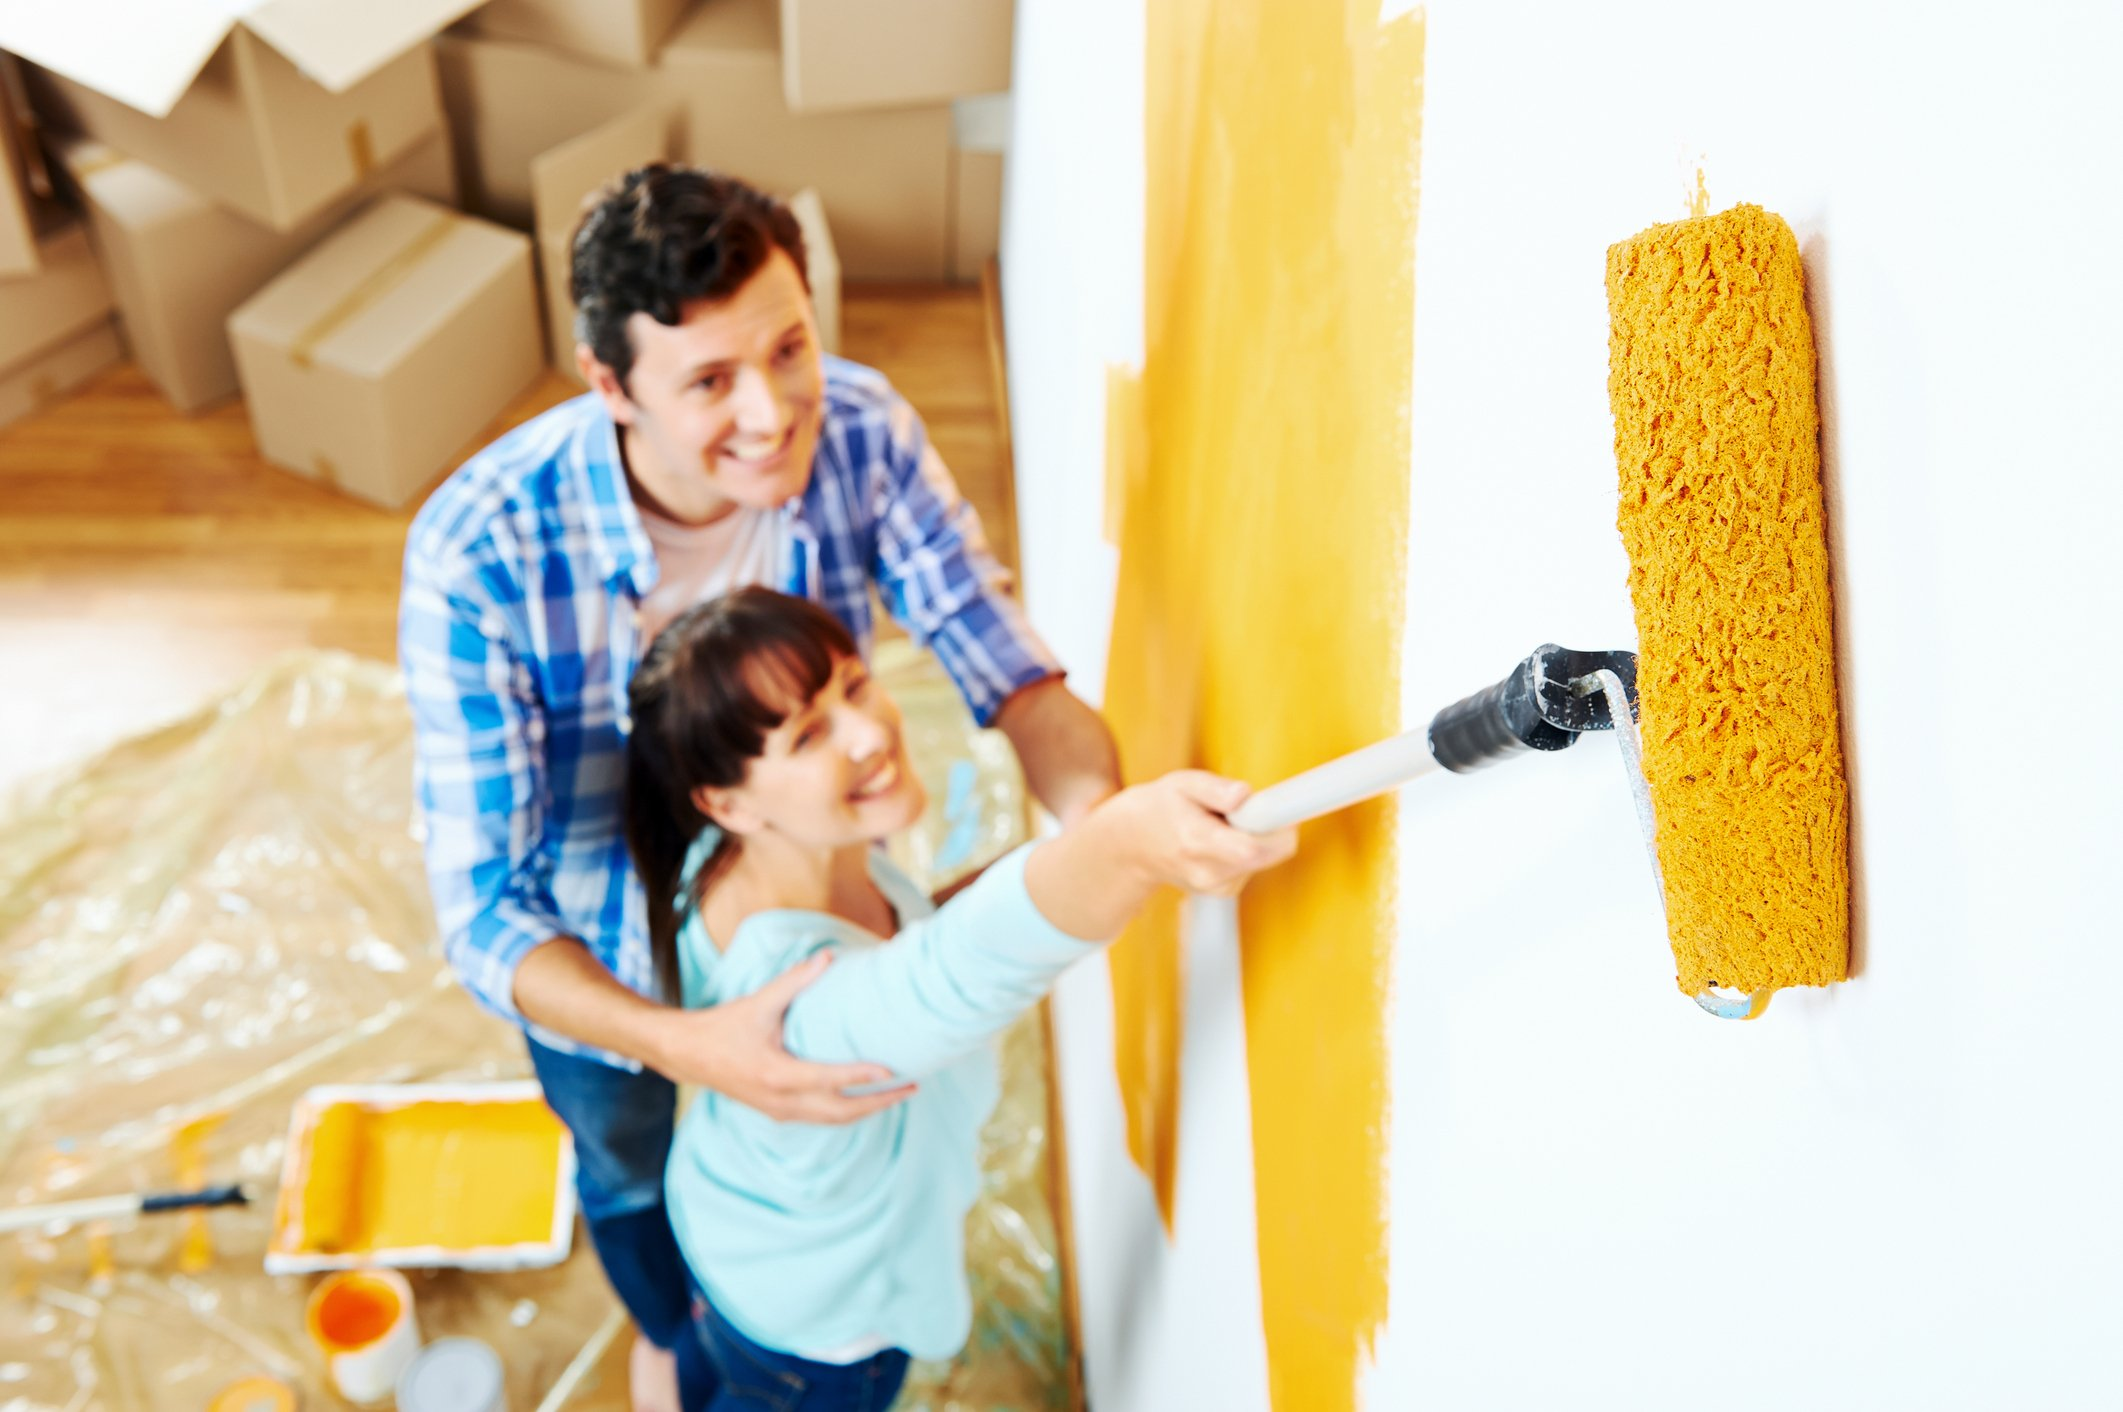 Painting a wall orange